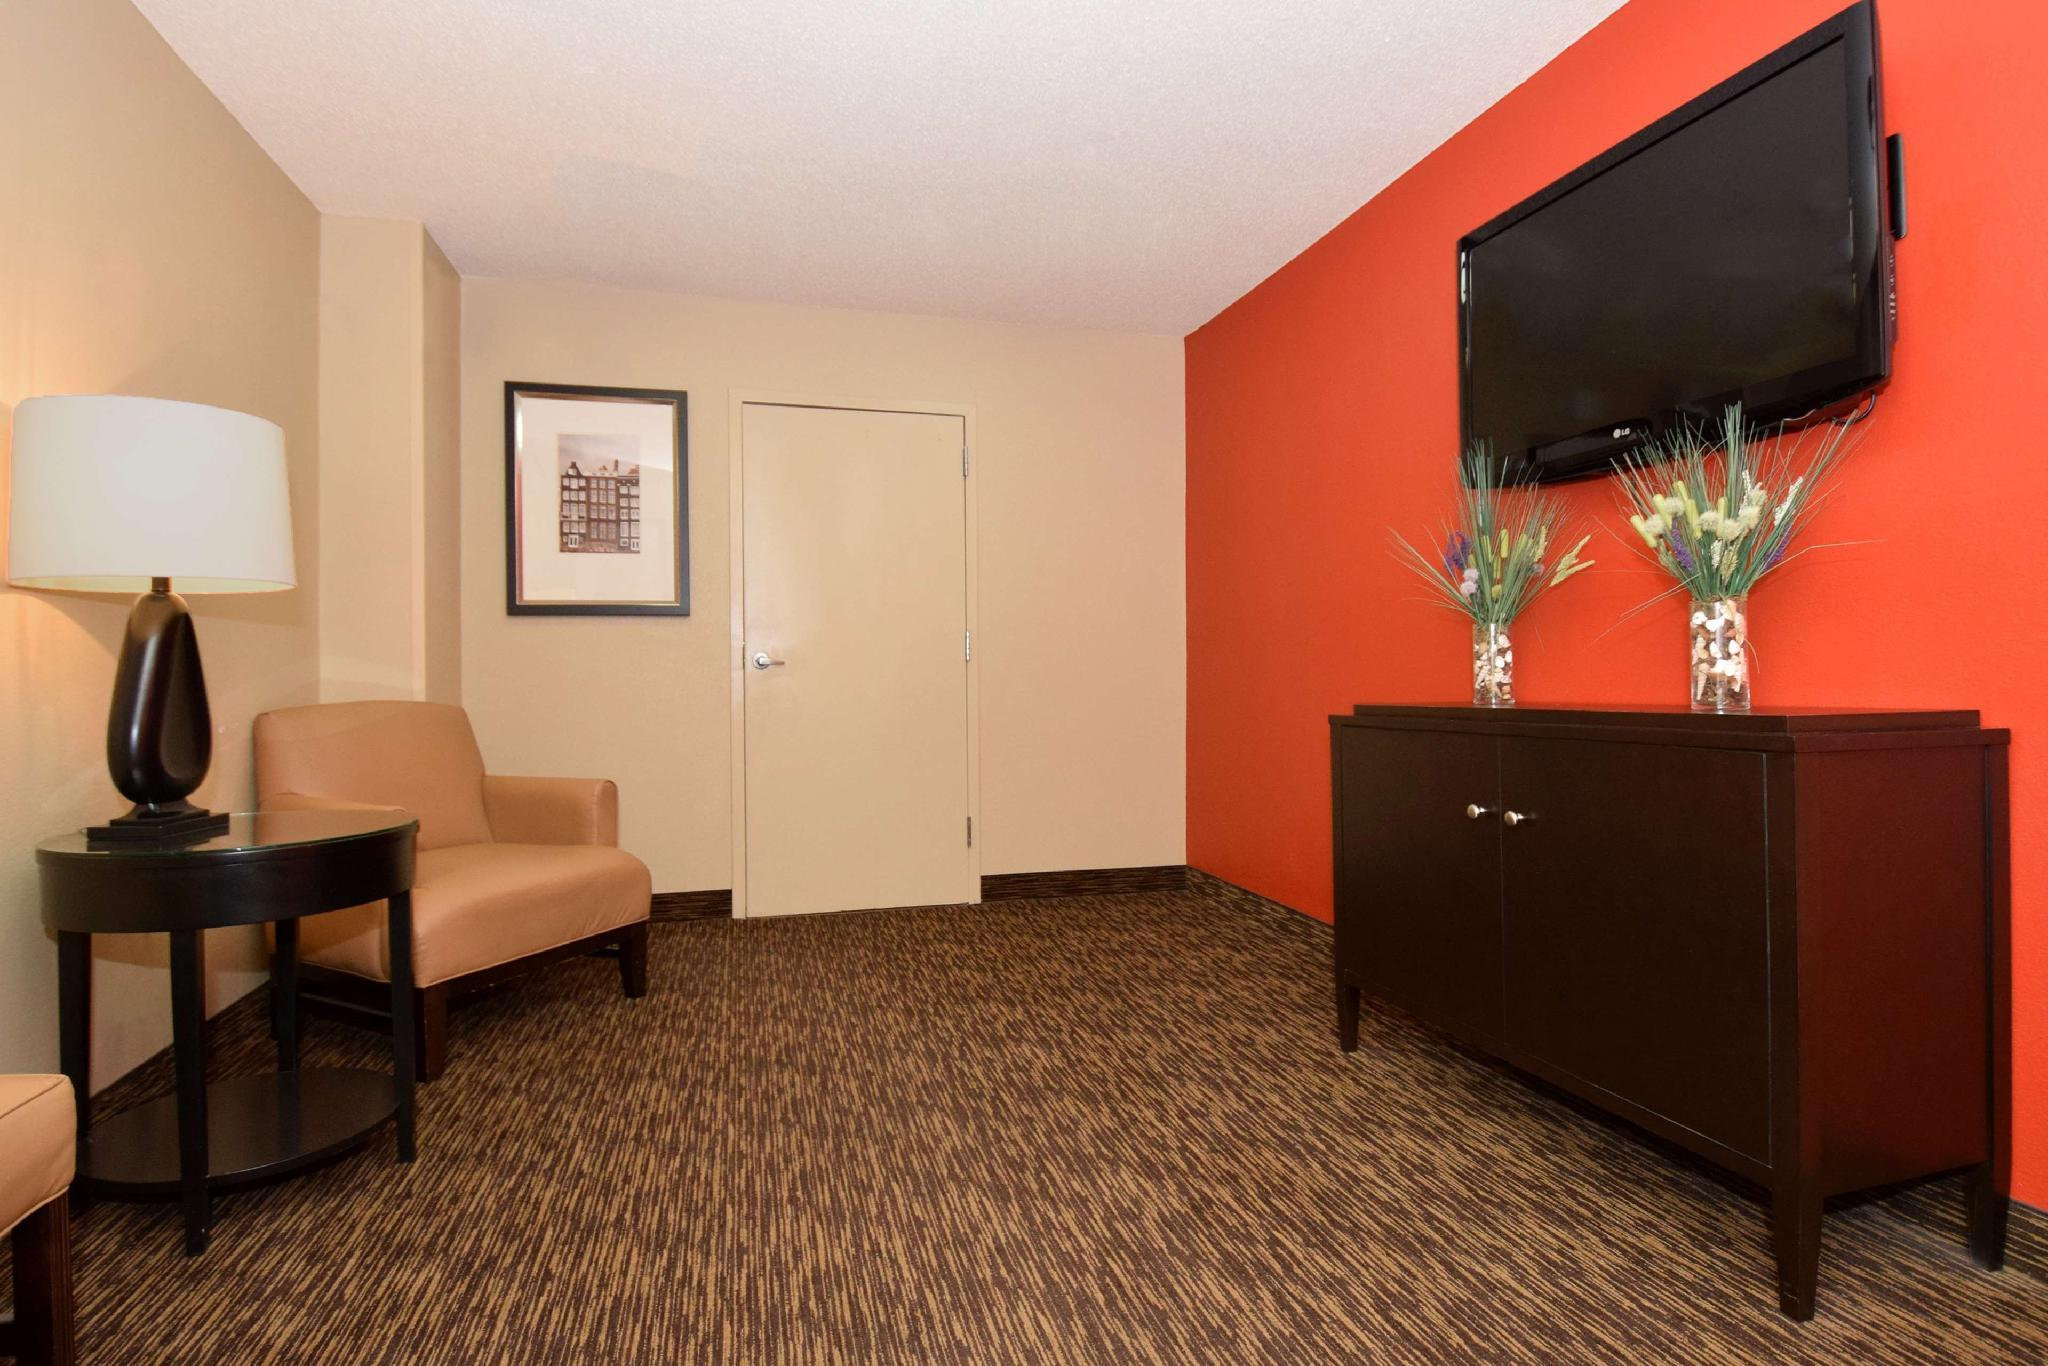 Extended Stay America BNA Airport Elm Hill Pike, Davidson